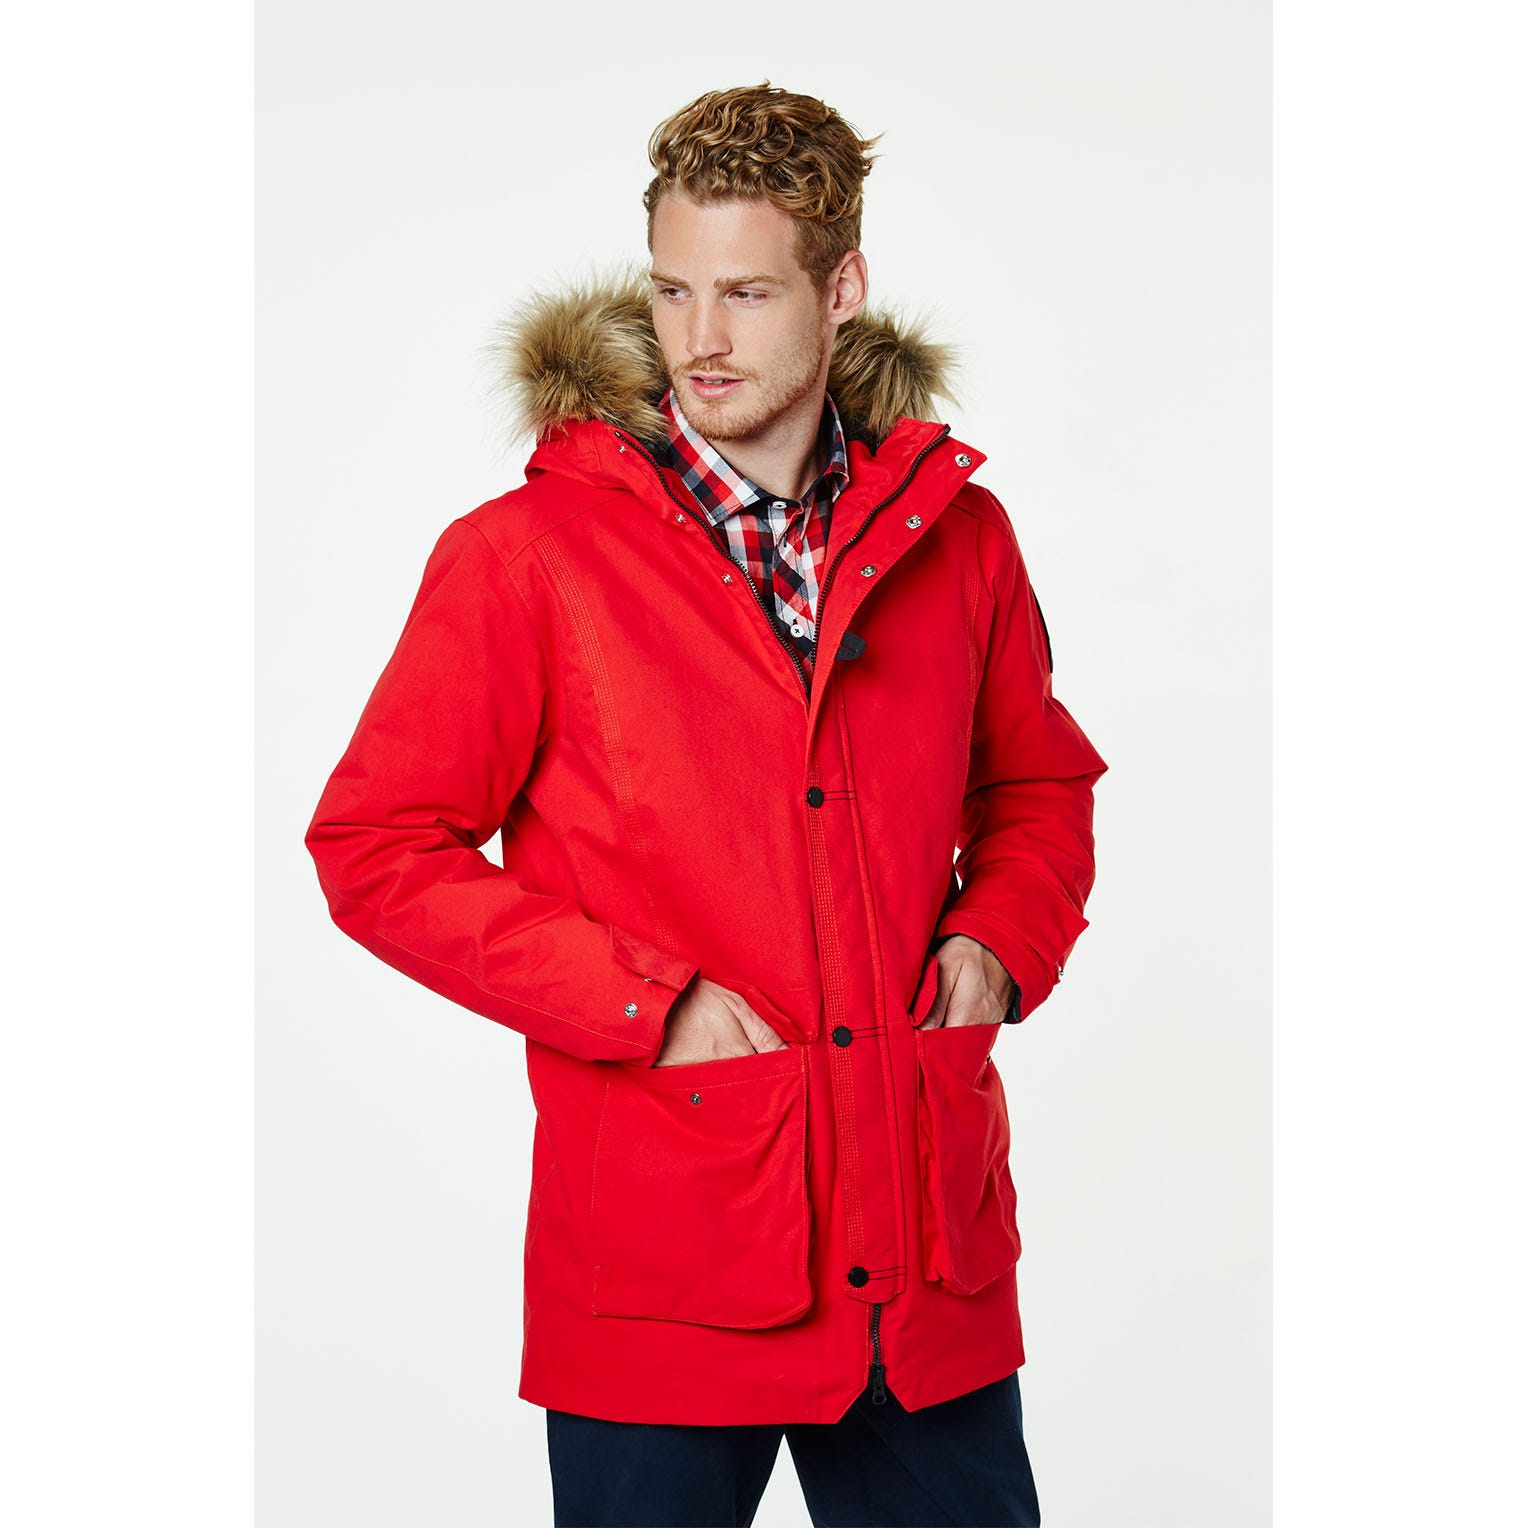 NORSE PARKA - Parkas & Rainwear - Holiday Gifts for Him - MEN